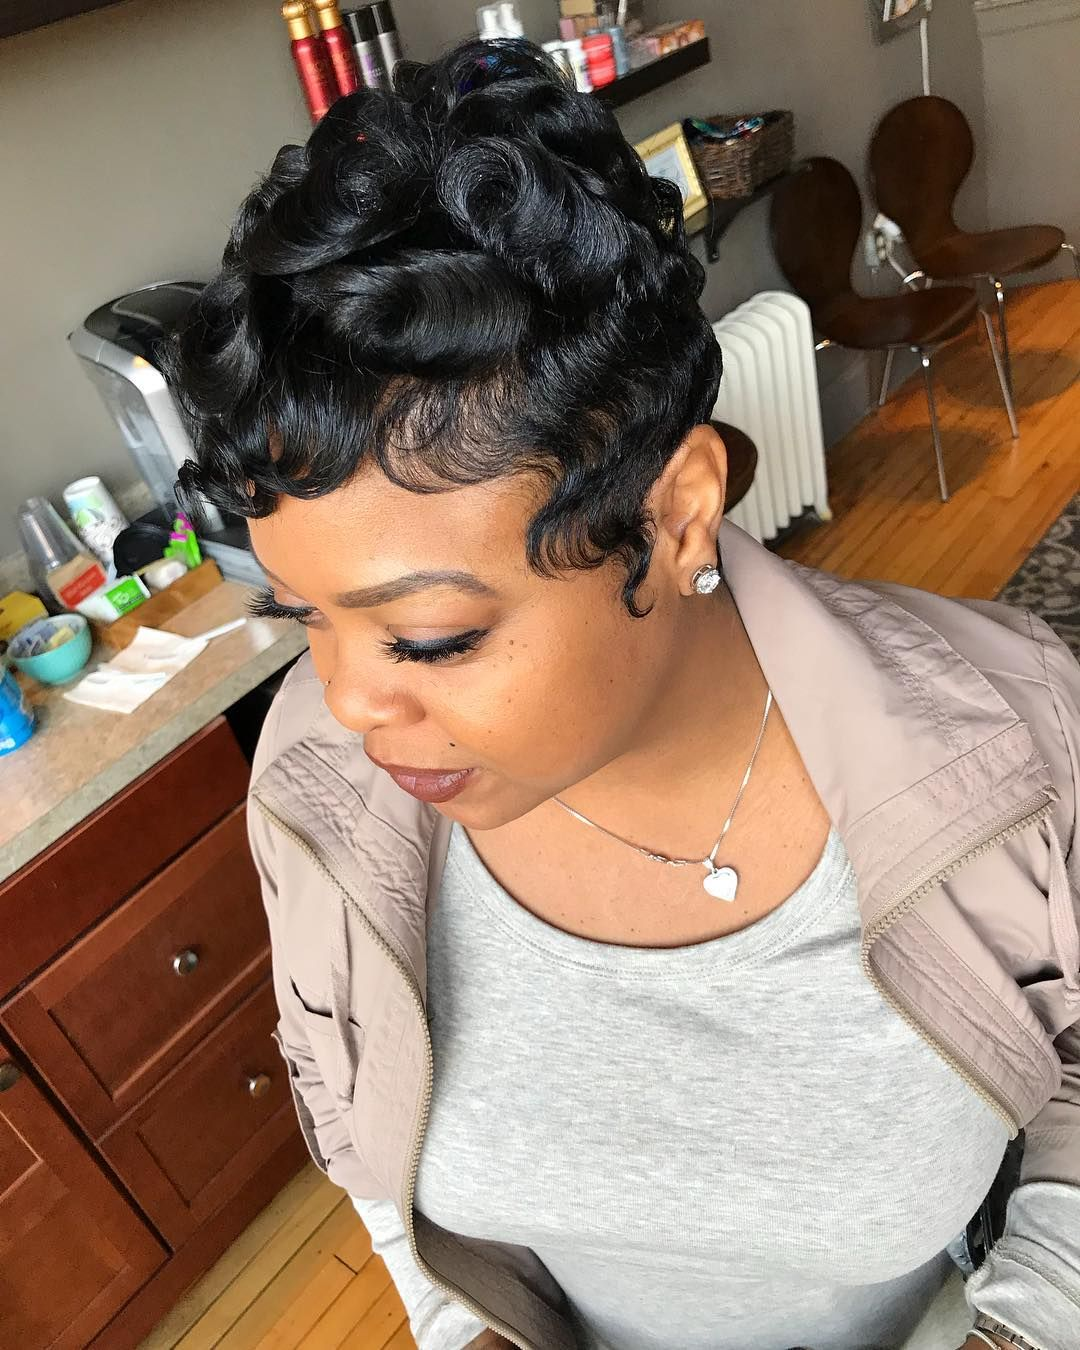 836 Likes 5 Comments The Living Room Hair Lounge Thelivingroomhairlounge On Instagram Haircut Curl Short Sassy Hair Short Hair Styles Pixie Hair Styles